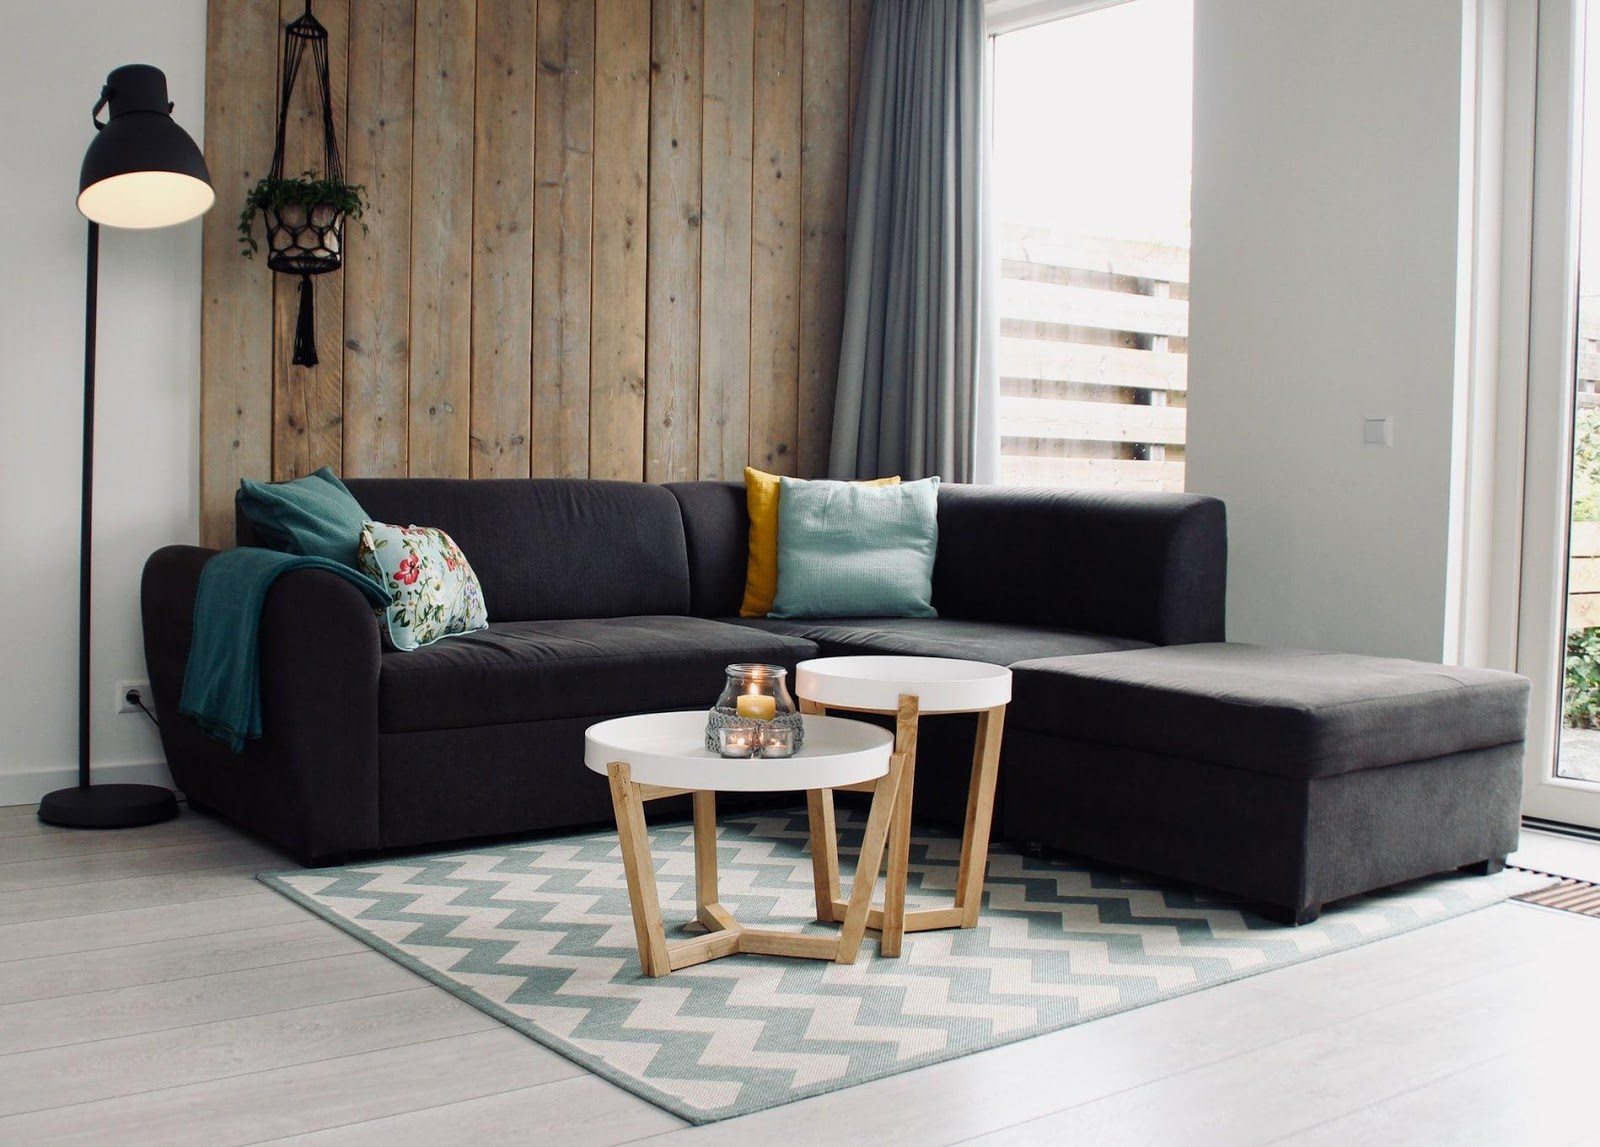 6. Sectionals with Accent Walls by simphome.com